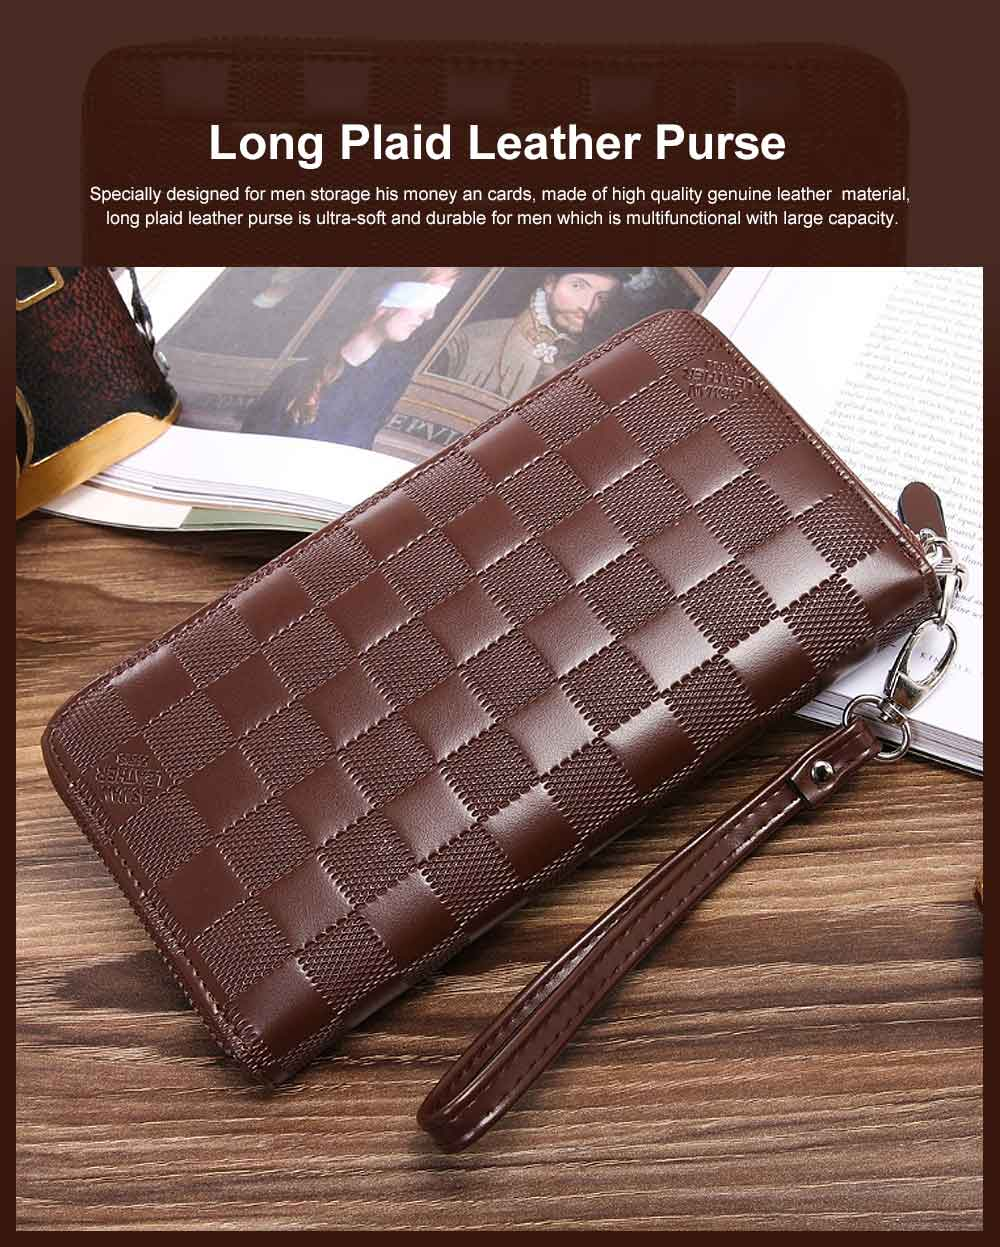 Long Plaid Leather Purse Wallet with Hardware Zipper Design, Stylish & Durable Handbag for Men 0